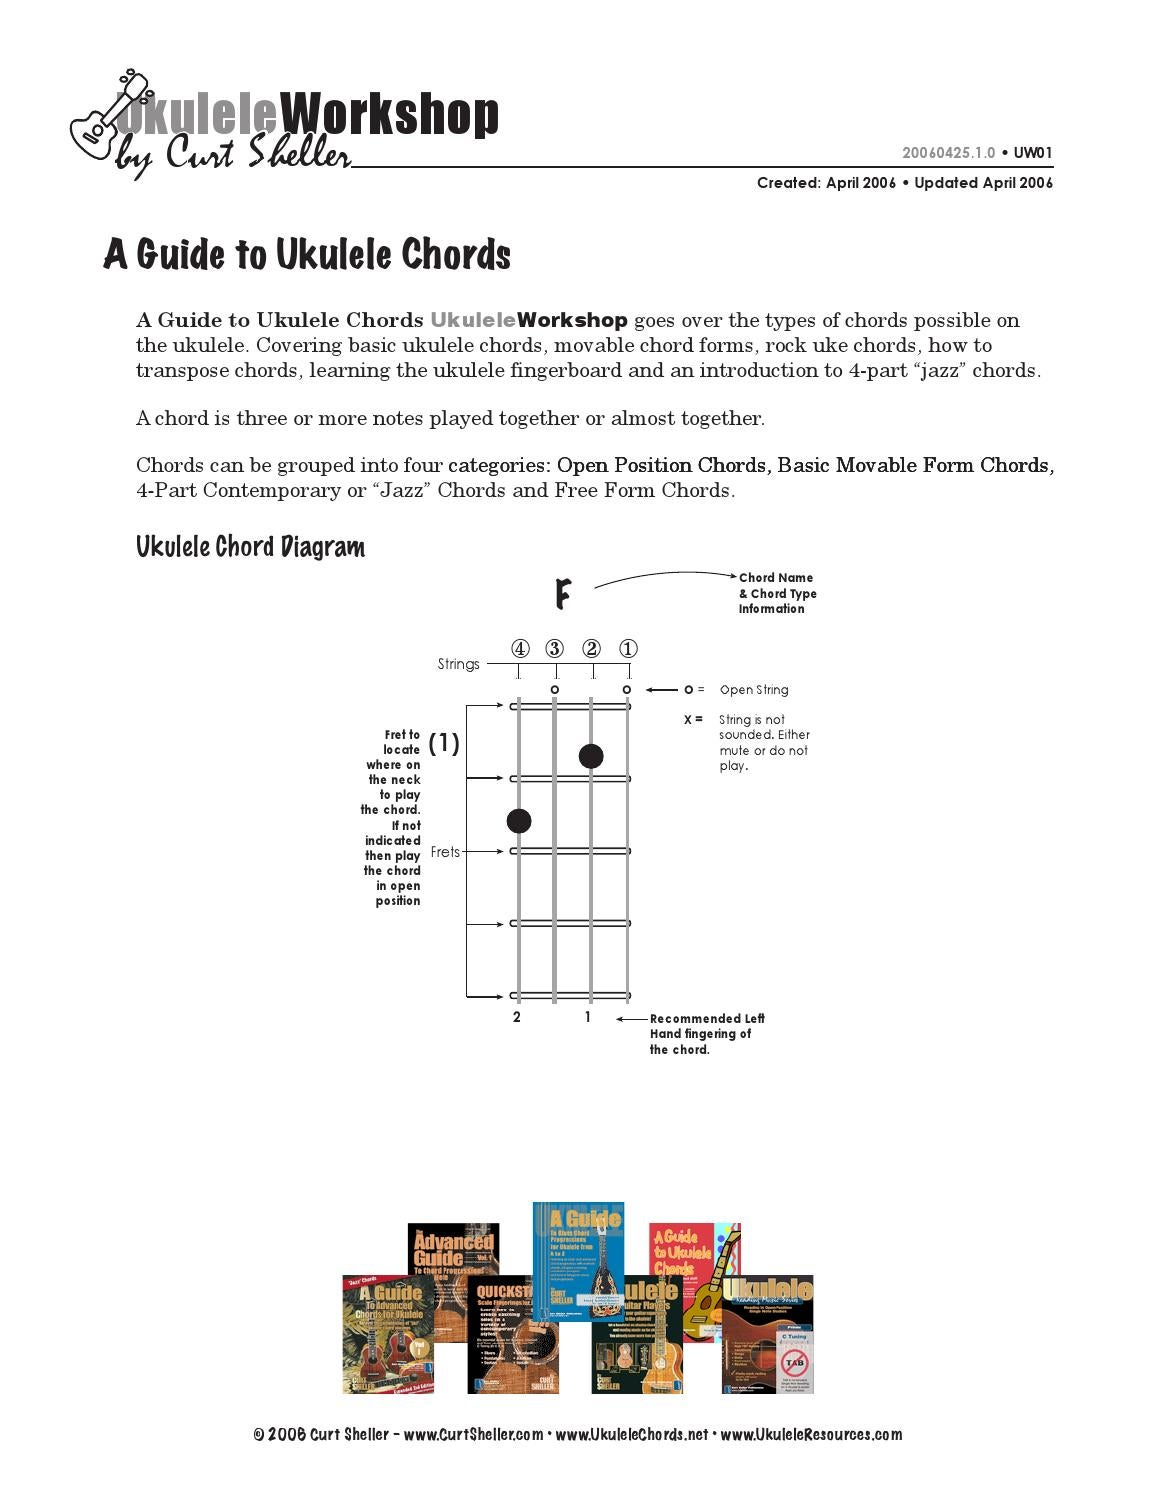 A Guide To Ukulele Chords Curt Sheller By Qrispe